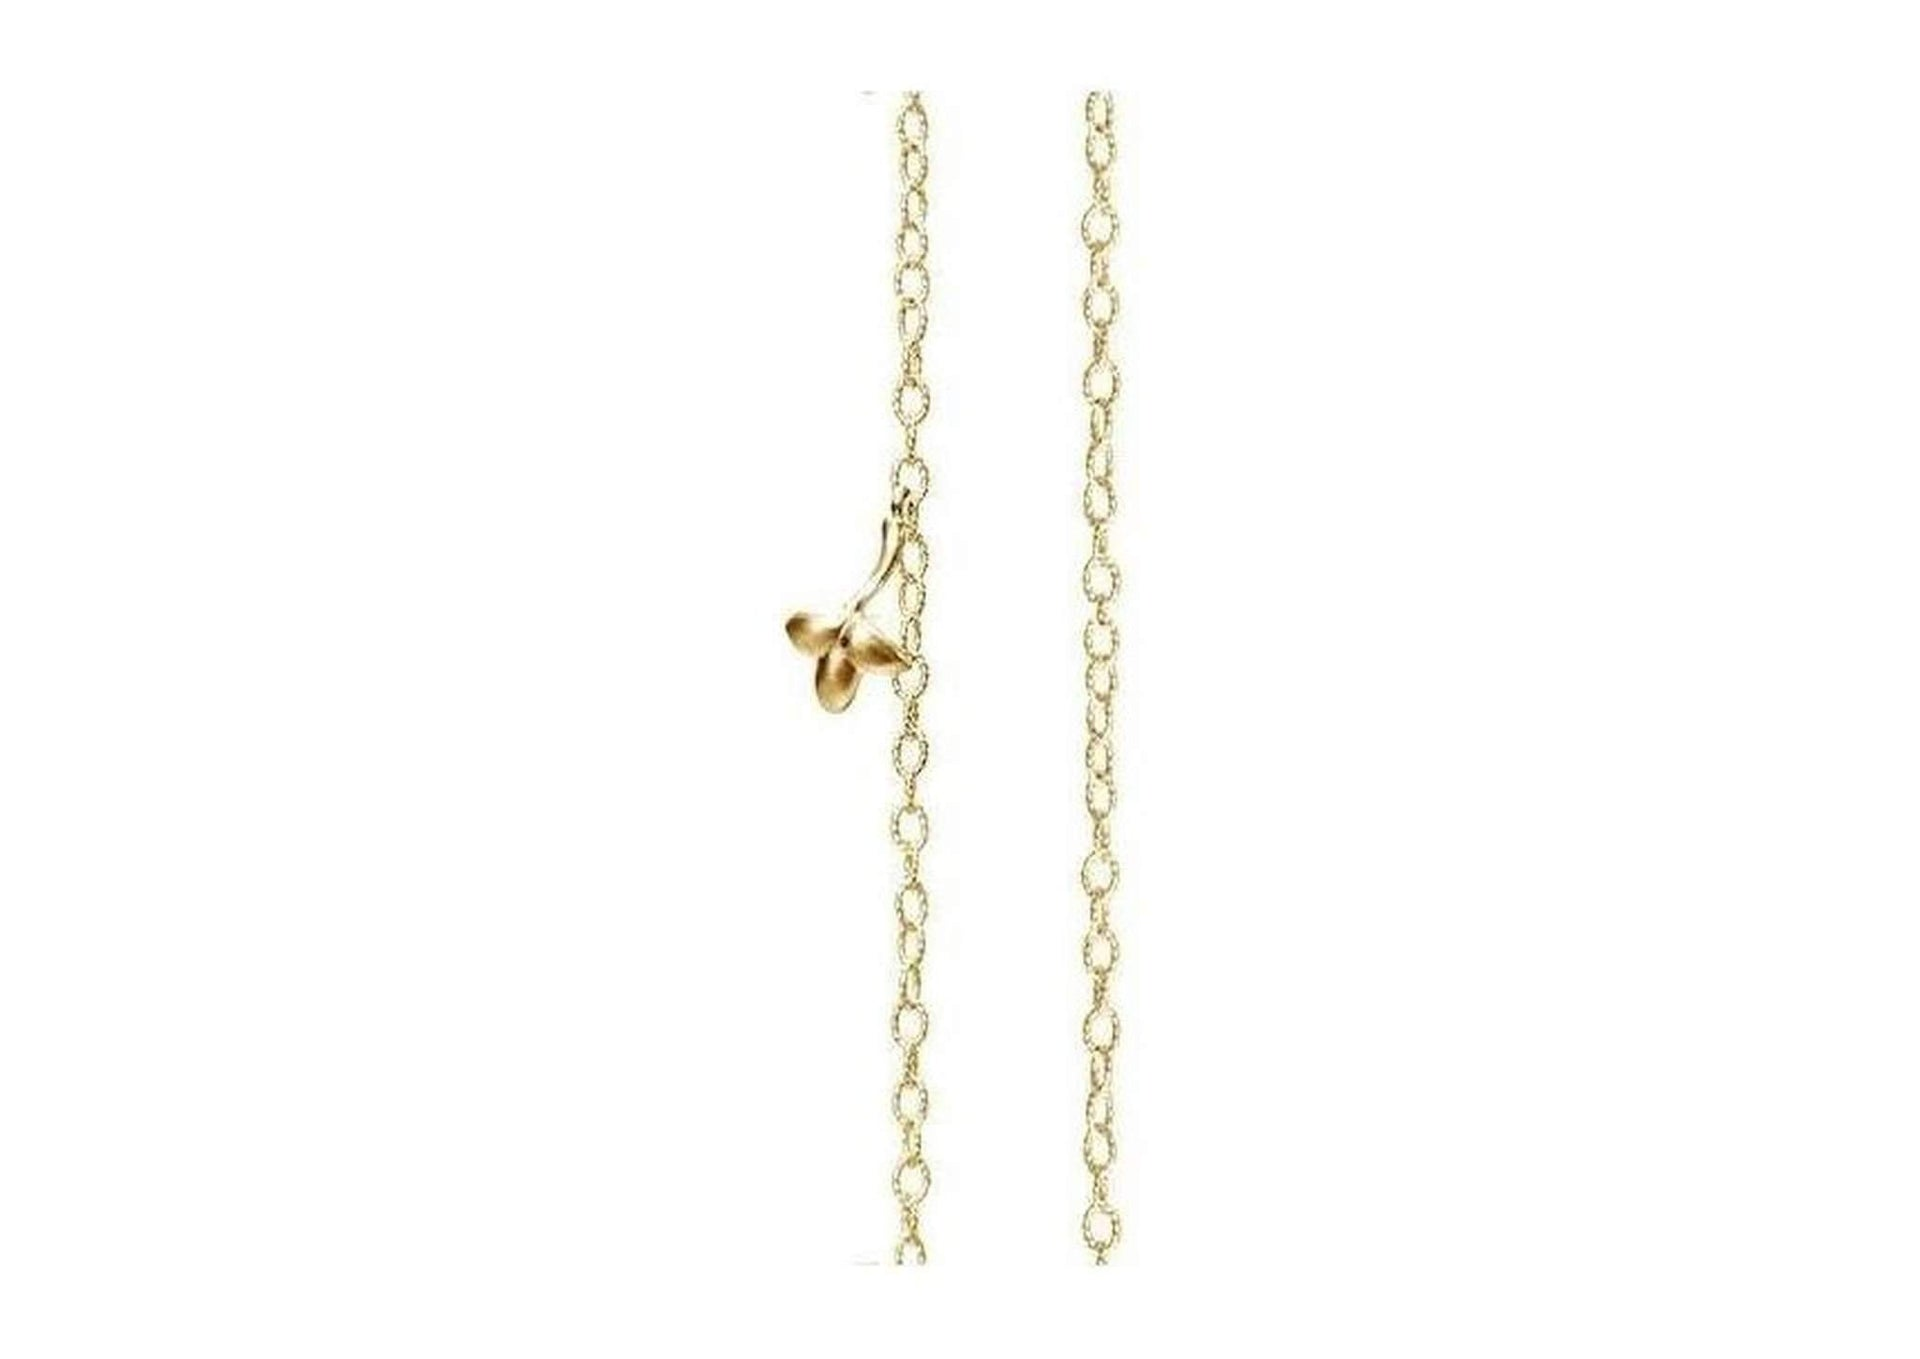 Lotus collier in 18K yellow gold-by-Ole Lynggaard-from official stockist-Jens Hansen